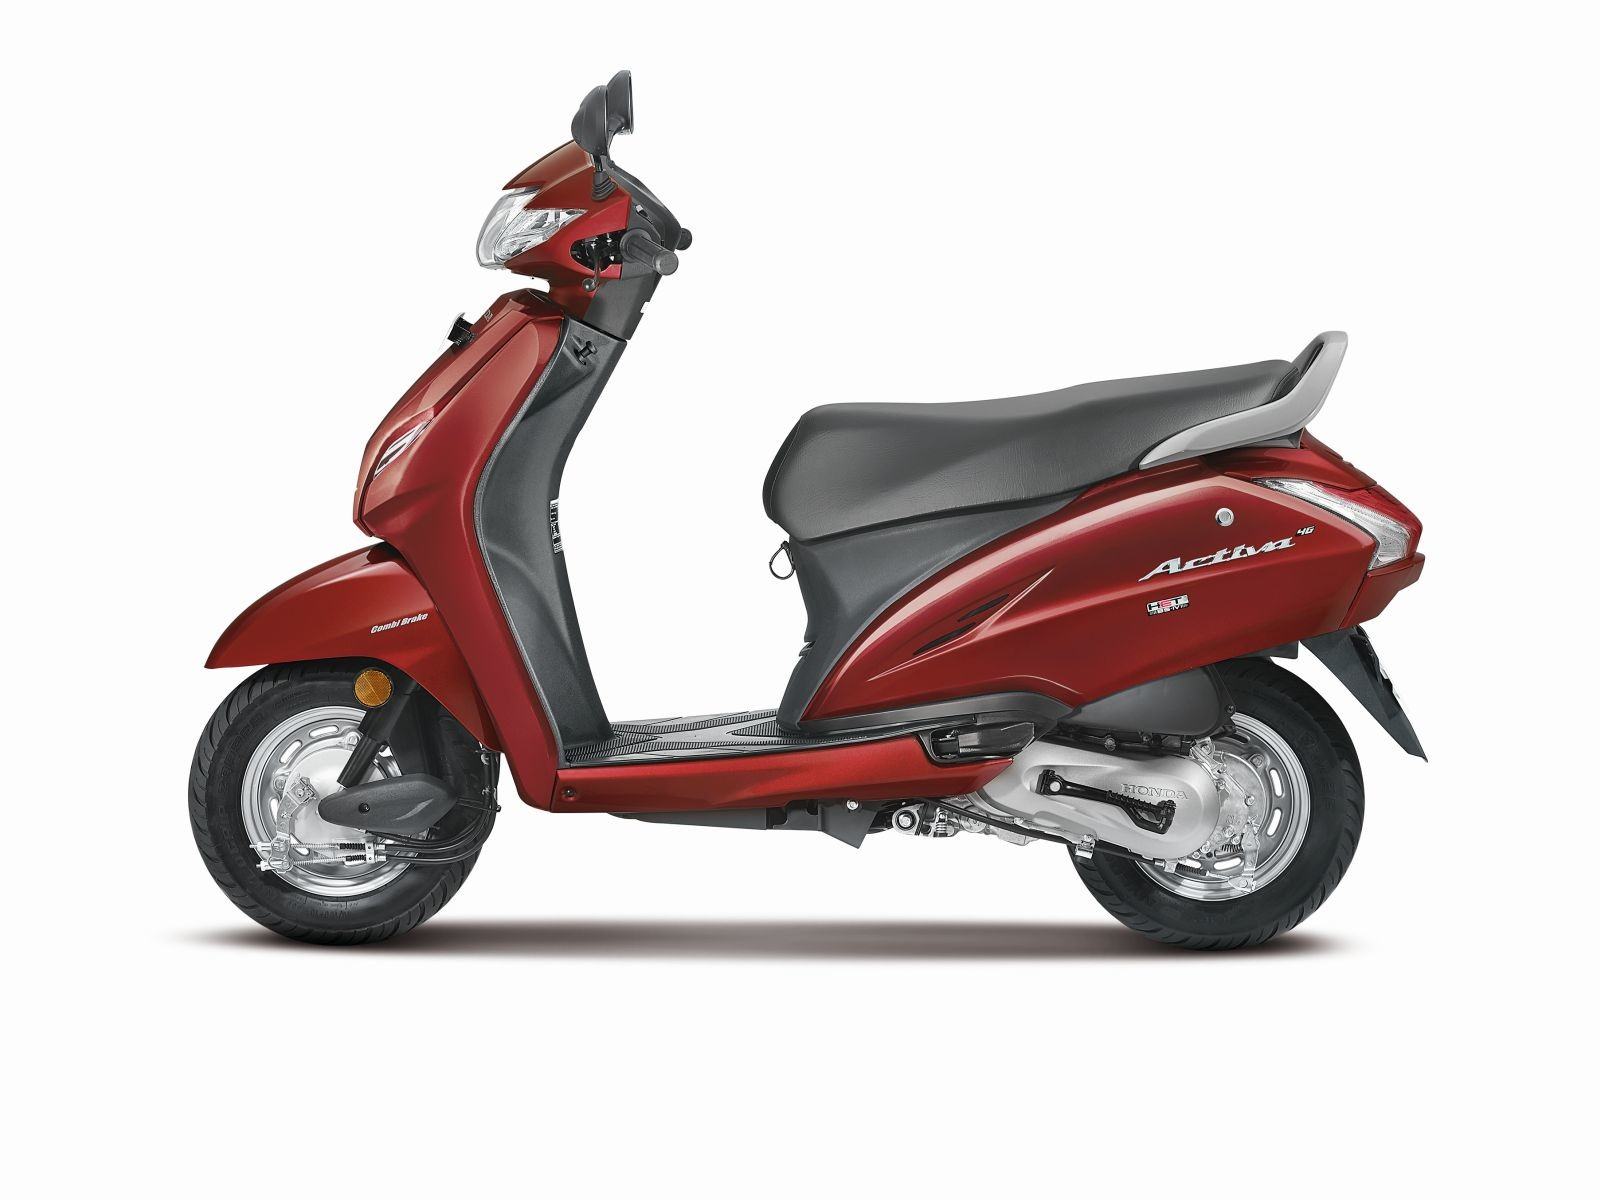 2017 honda activa 4g bsiv scooter launched at rs 50 730